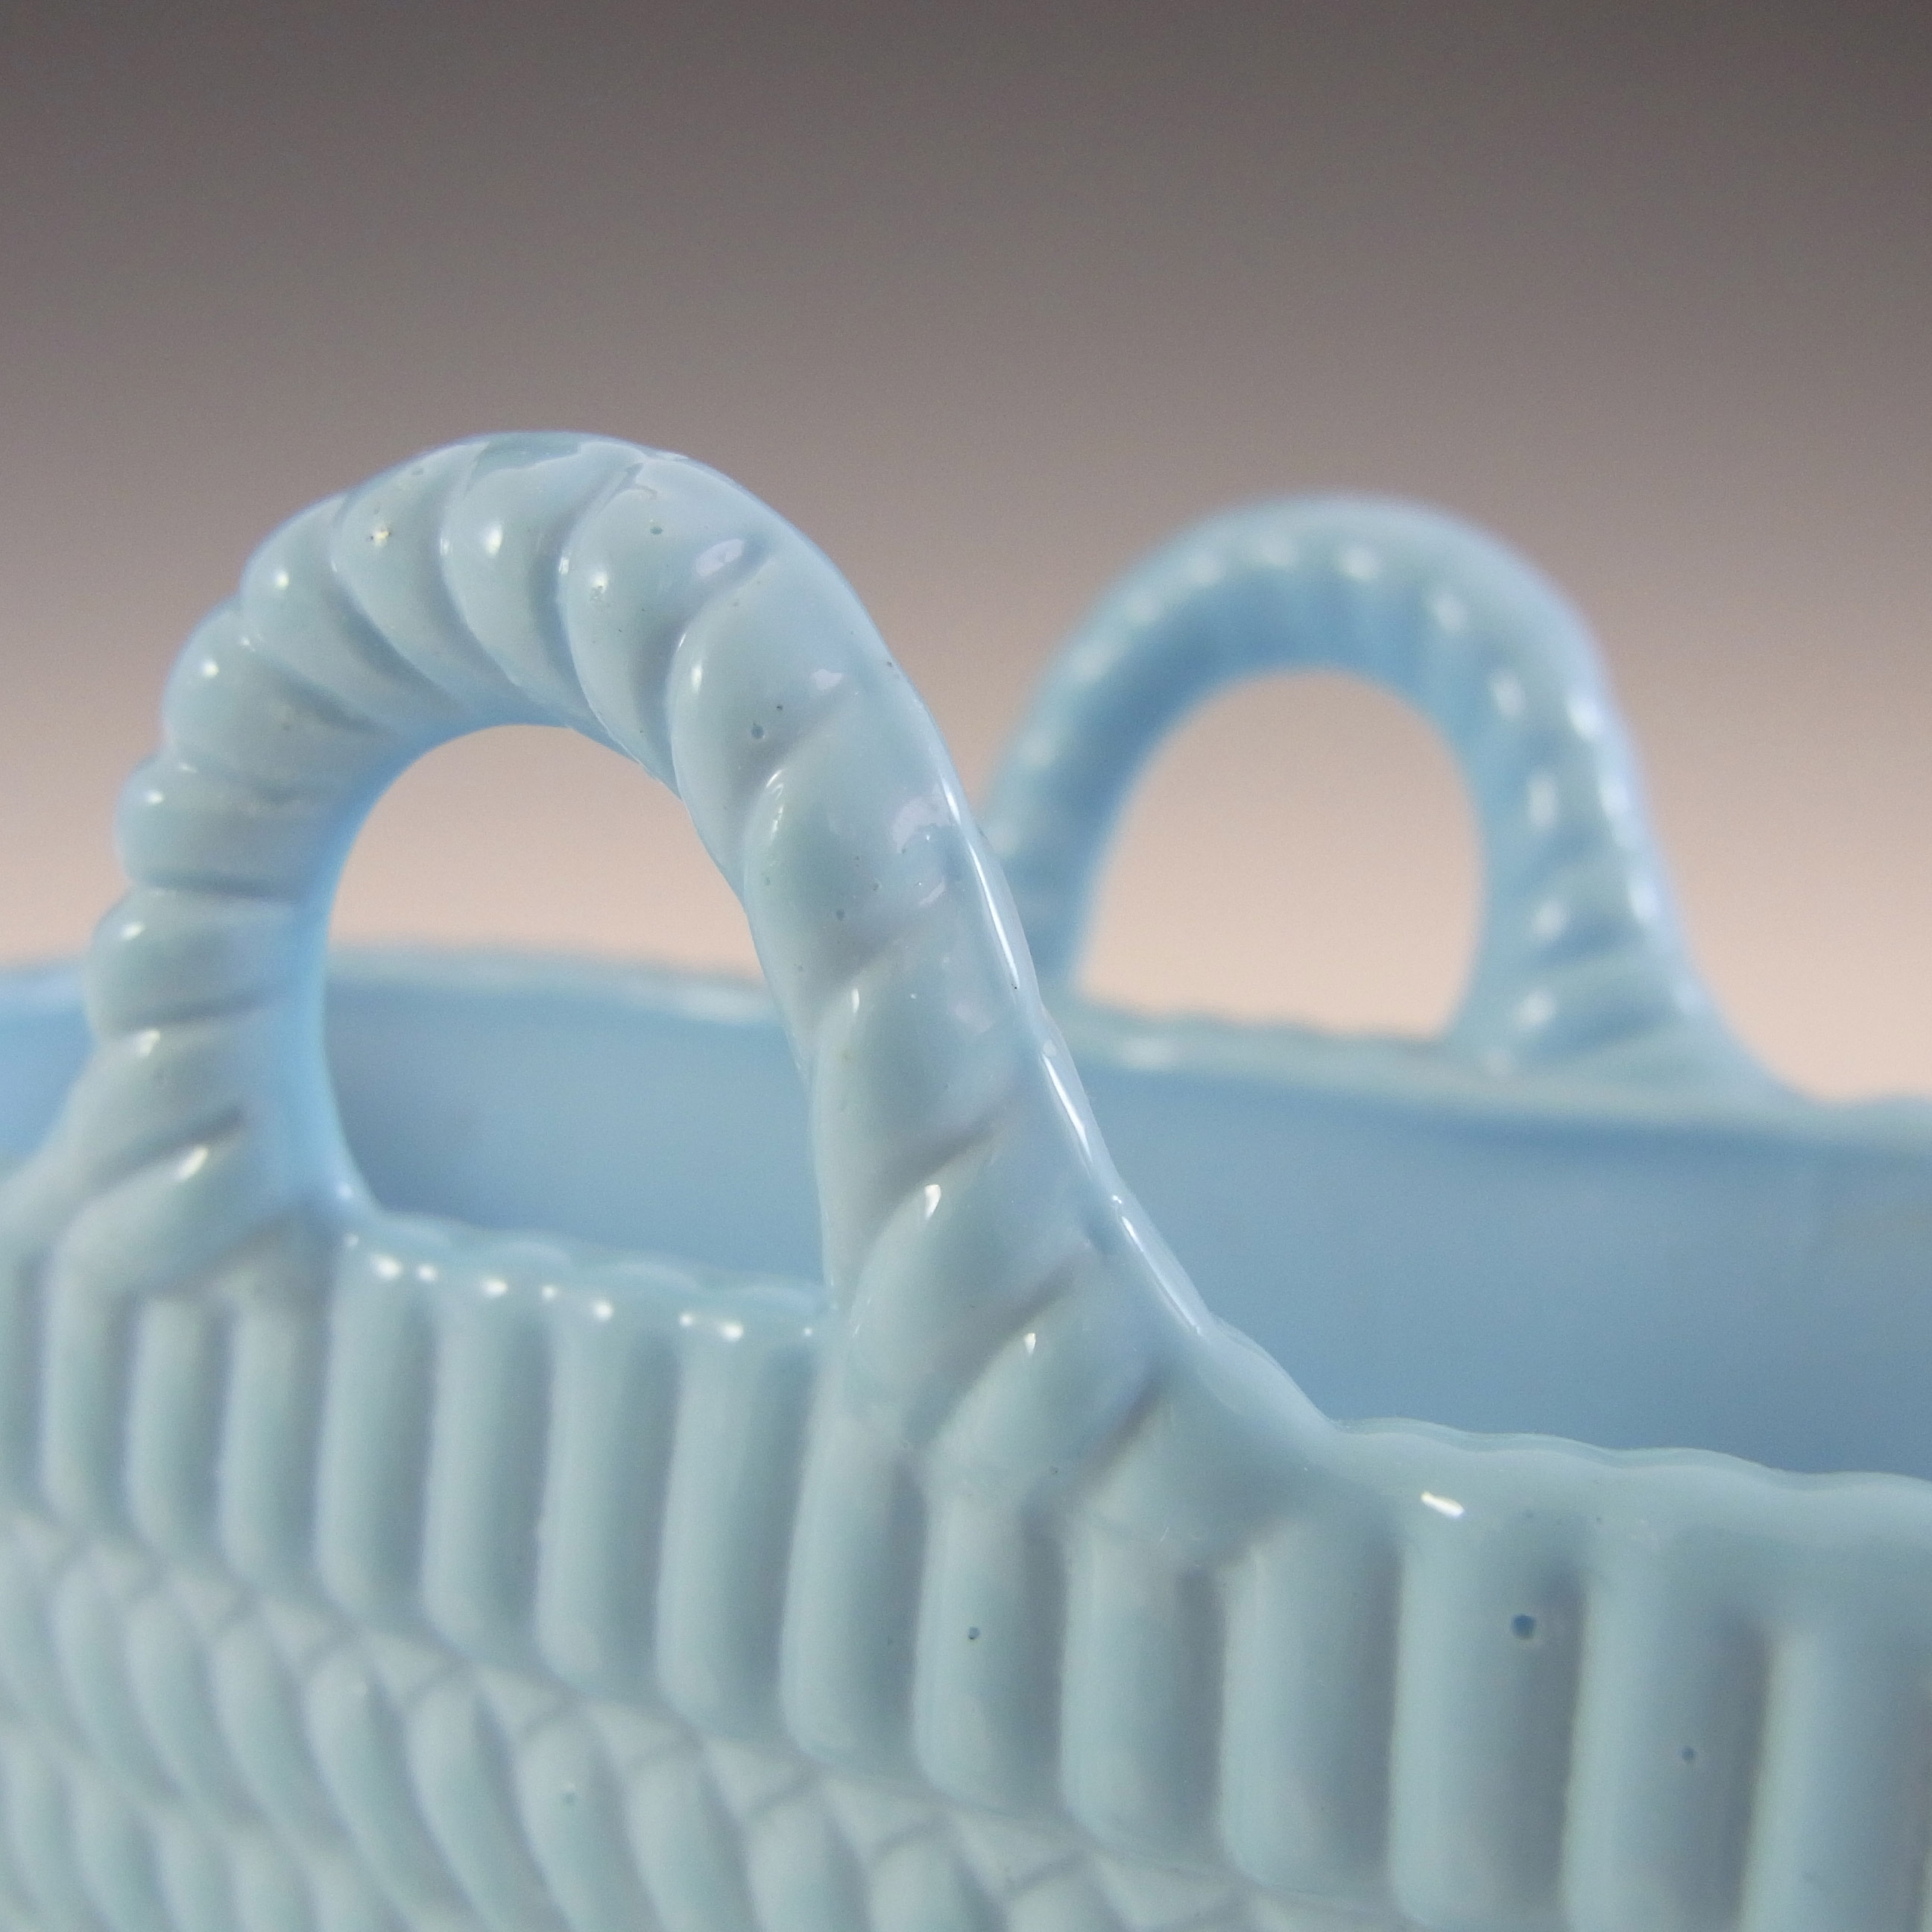 Sowerby #1192 1/2 MARKED Victorian Blue Milk Glass Antique Basket Bowl - Click Image to Close